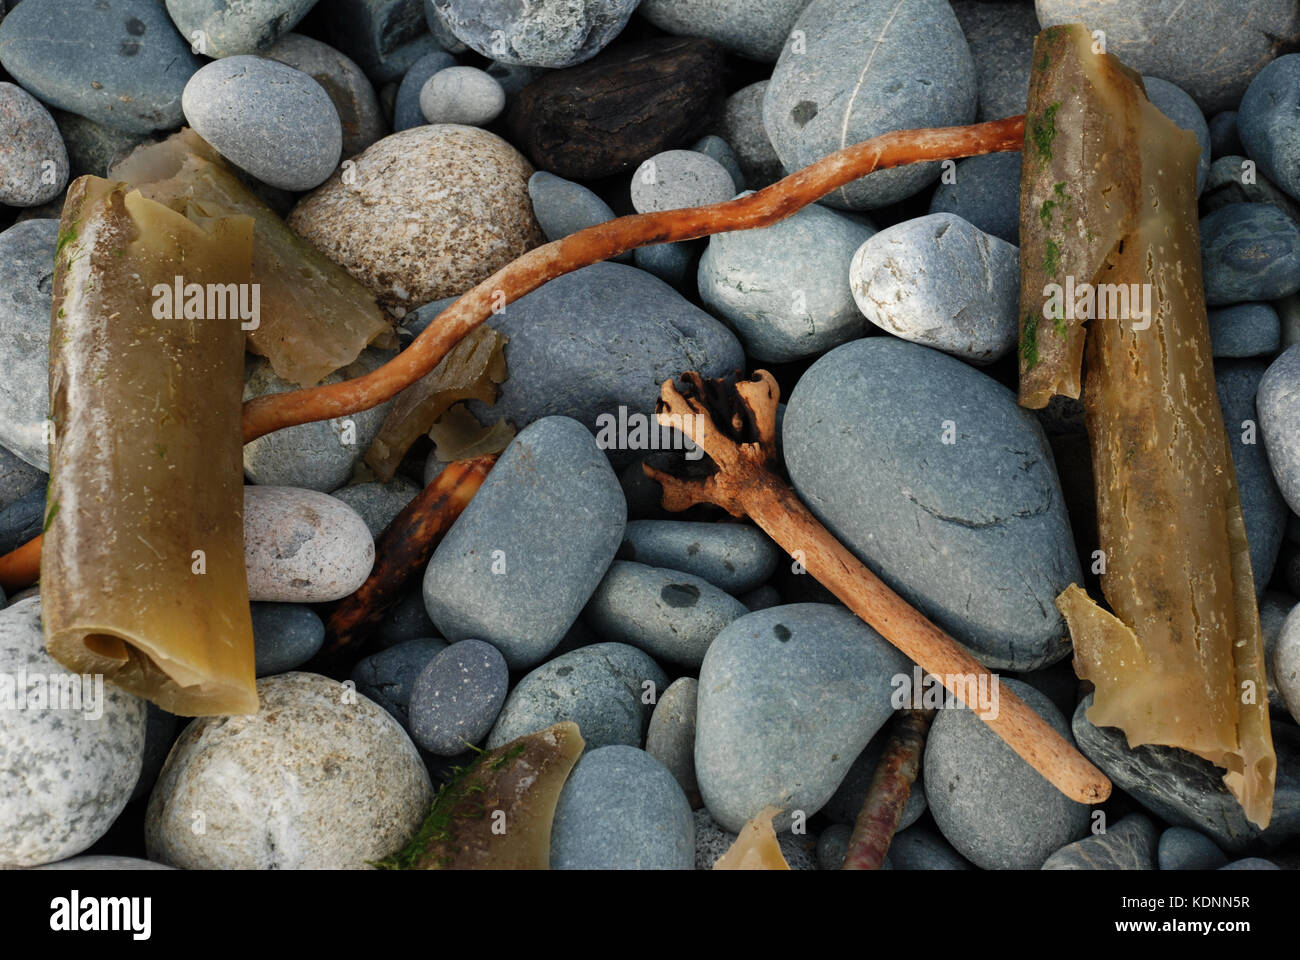 Stones and seaweed - French Beach, Vancouver BC, Canada - Stock Image